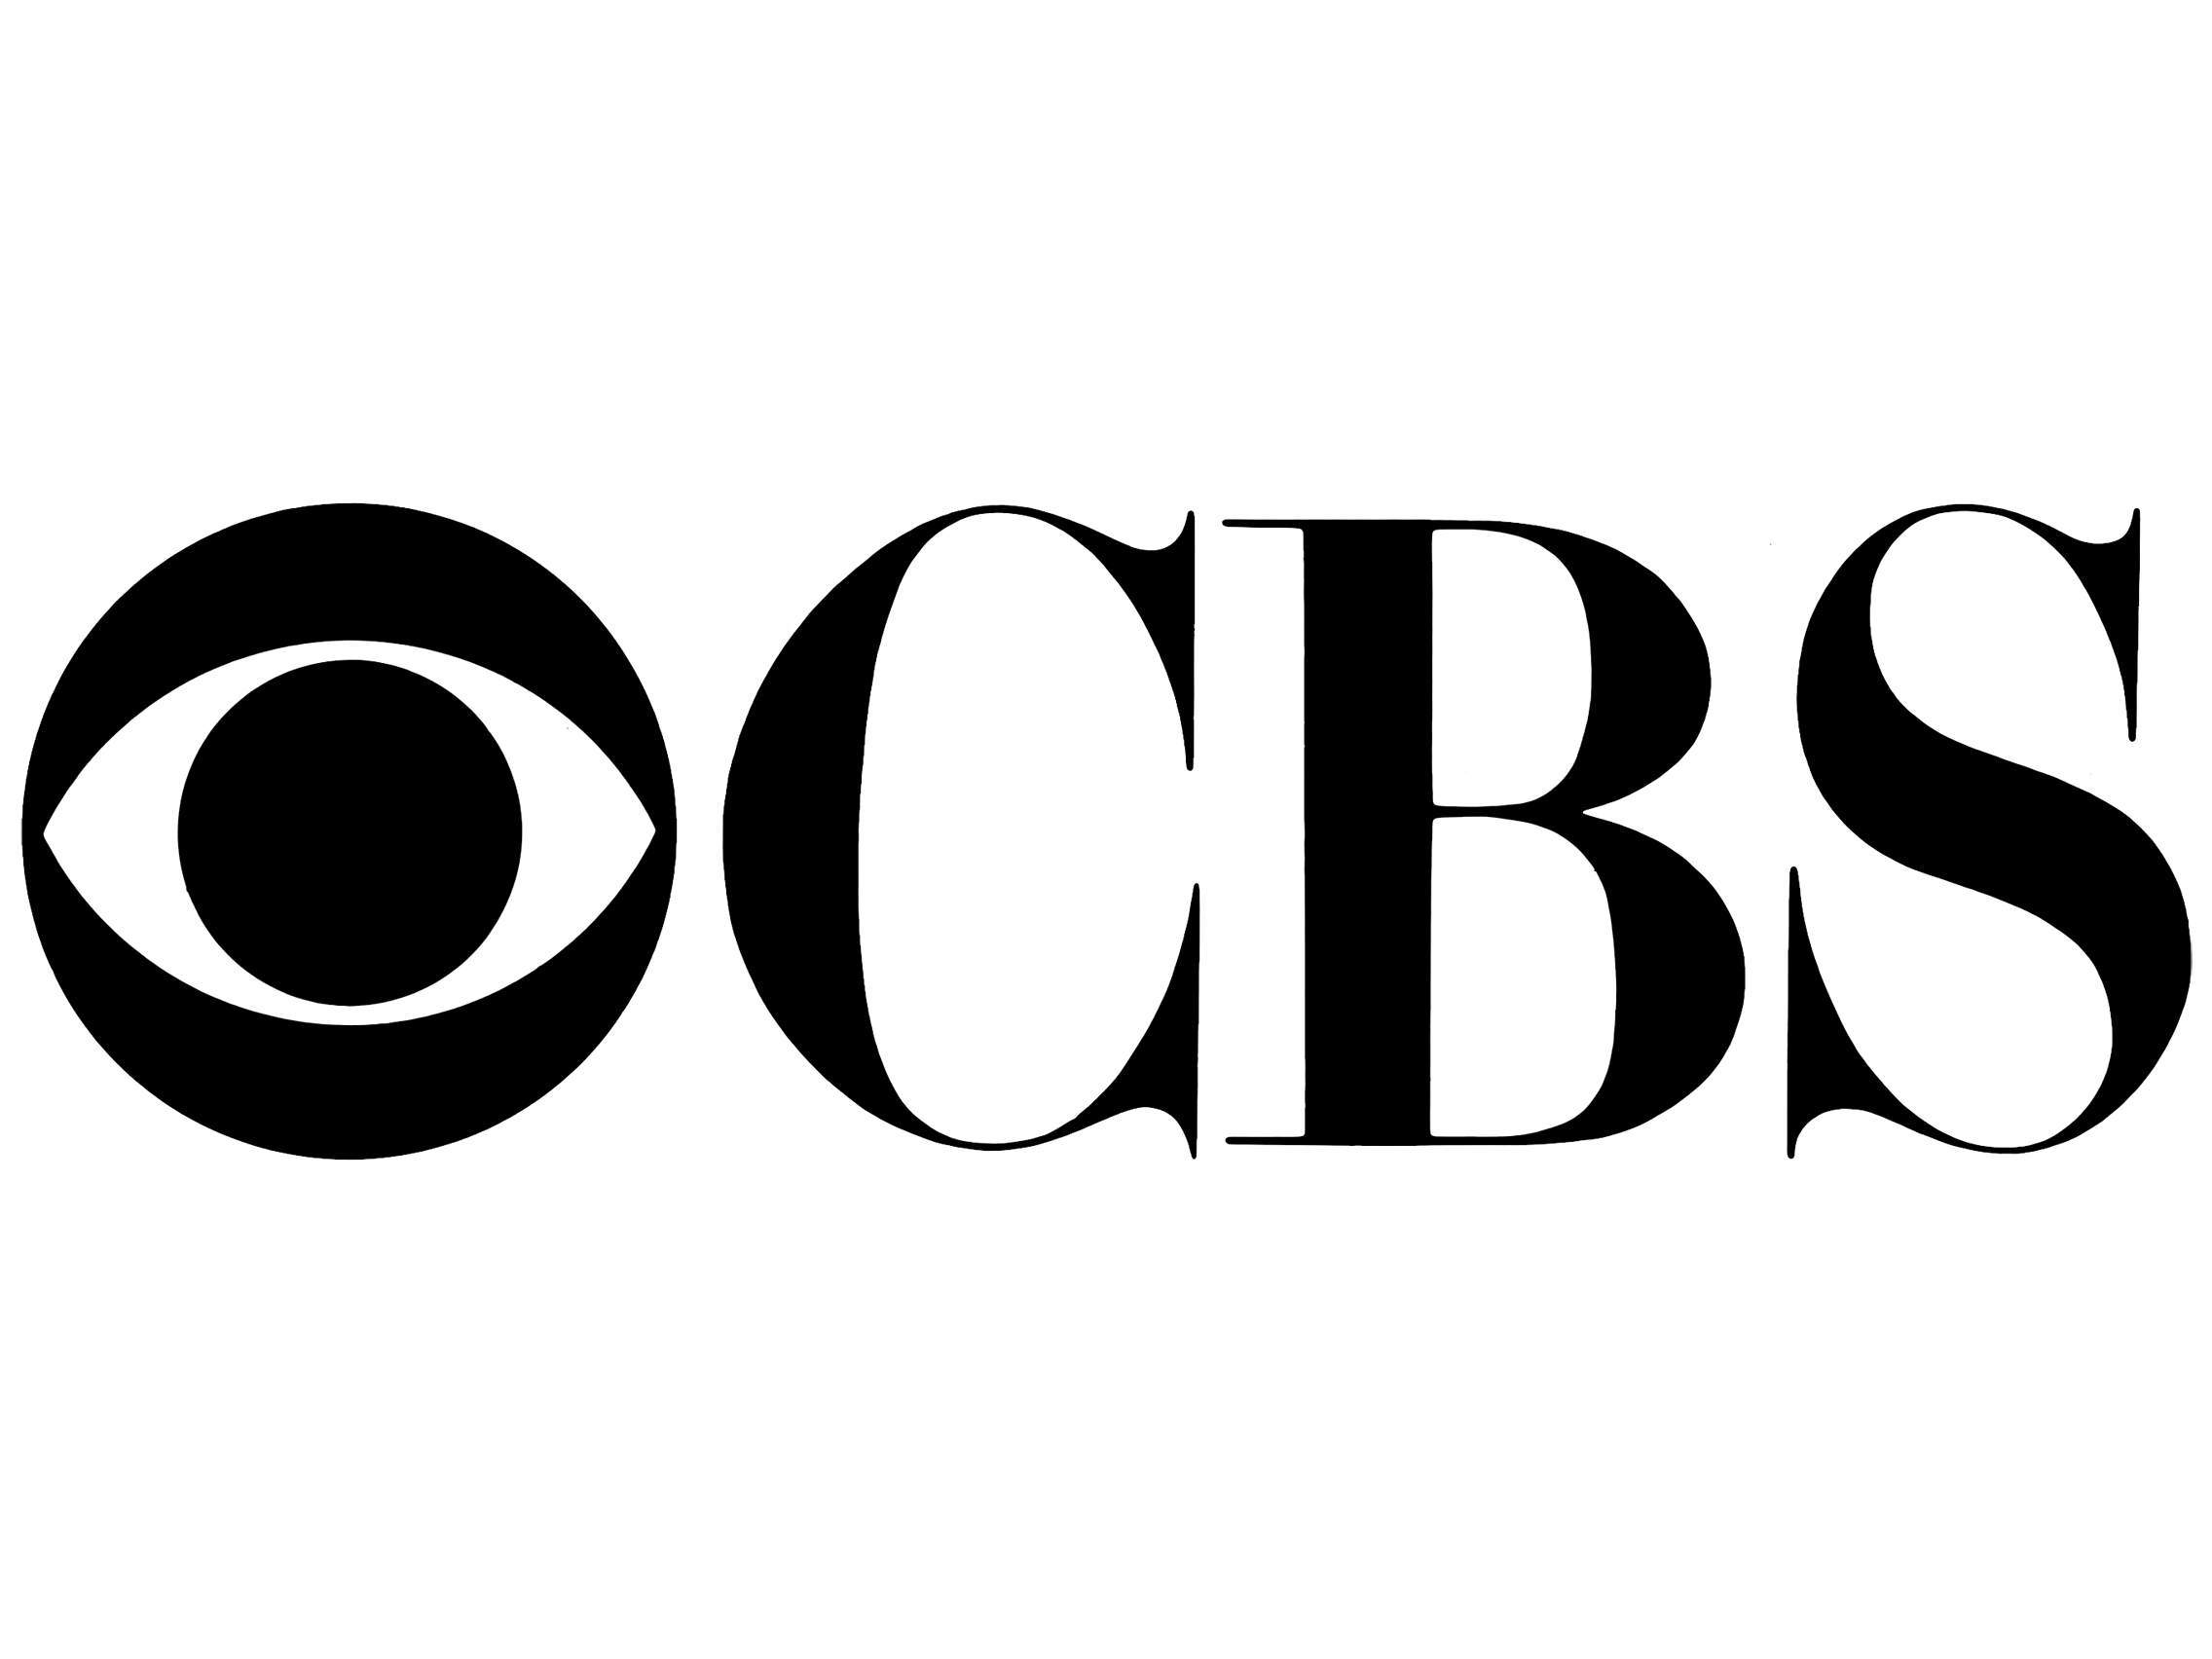 CBS Logo - cbs logo | The Mary Sue